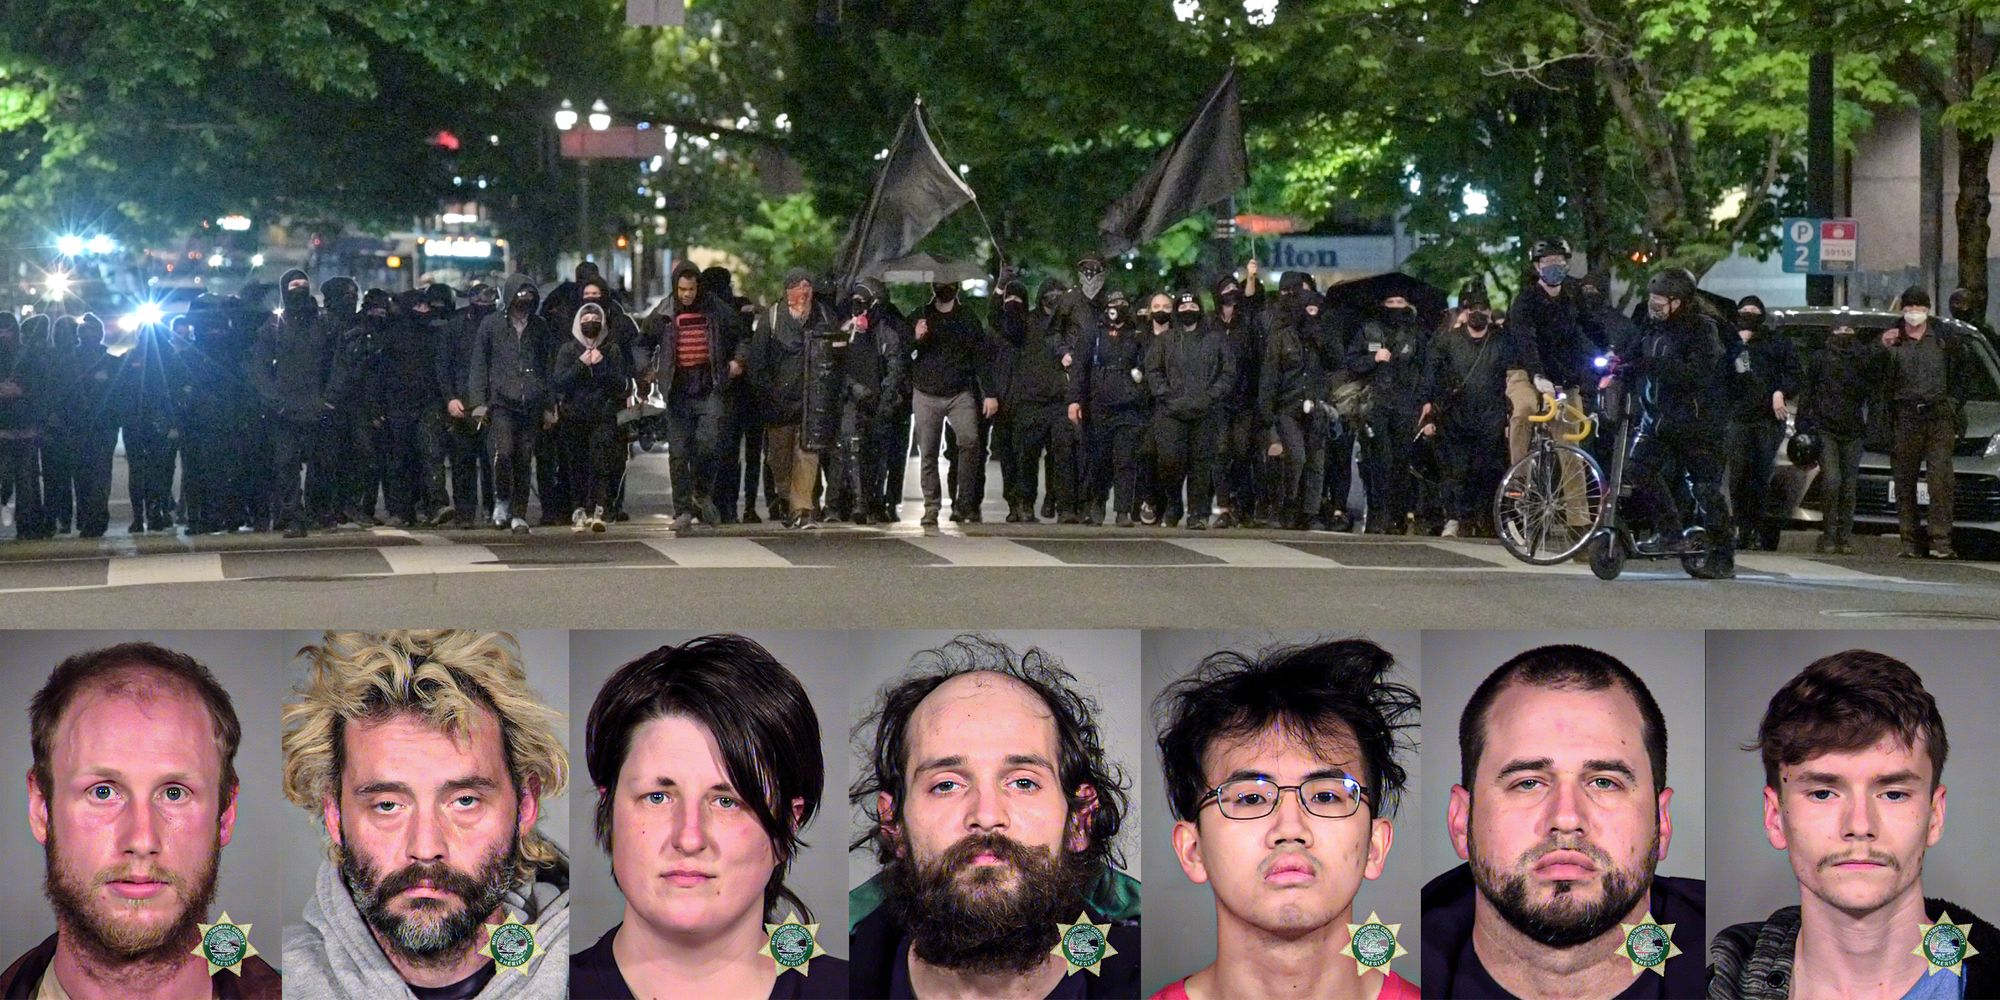 Portland Antifa May Day rioters charged with felonies by district attorney